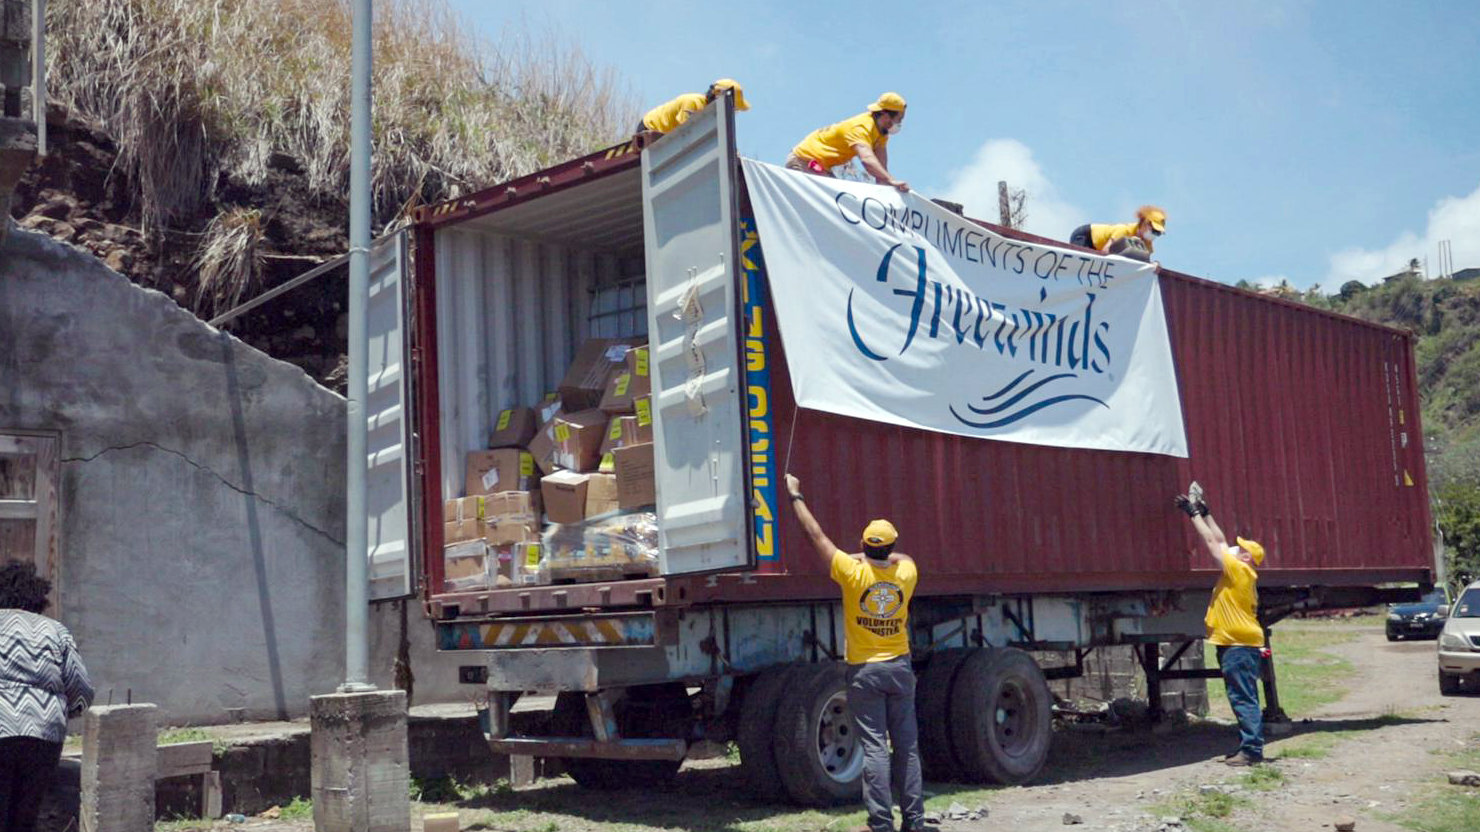 A team of VMs unload a container of vital supplies, which the Freewinds sent to the island with the support of the IAS.